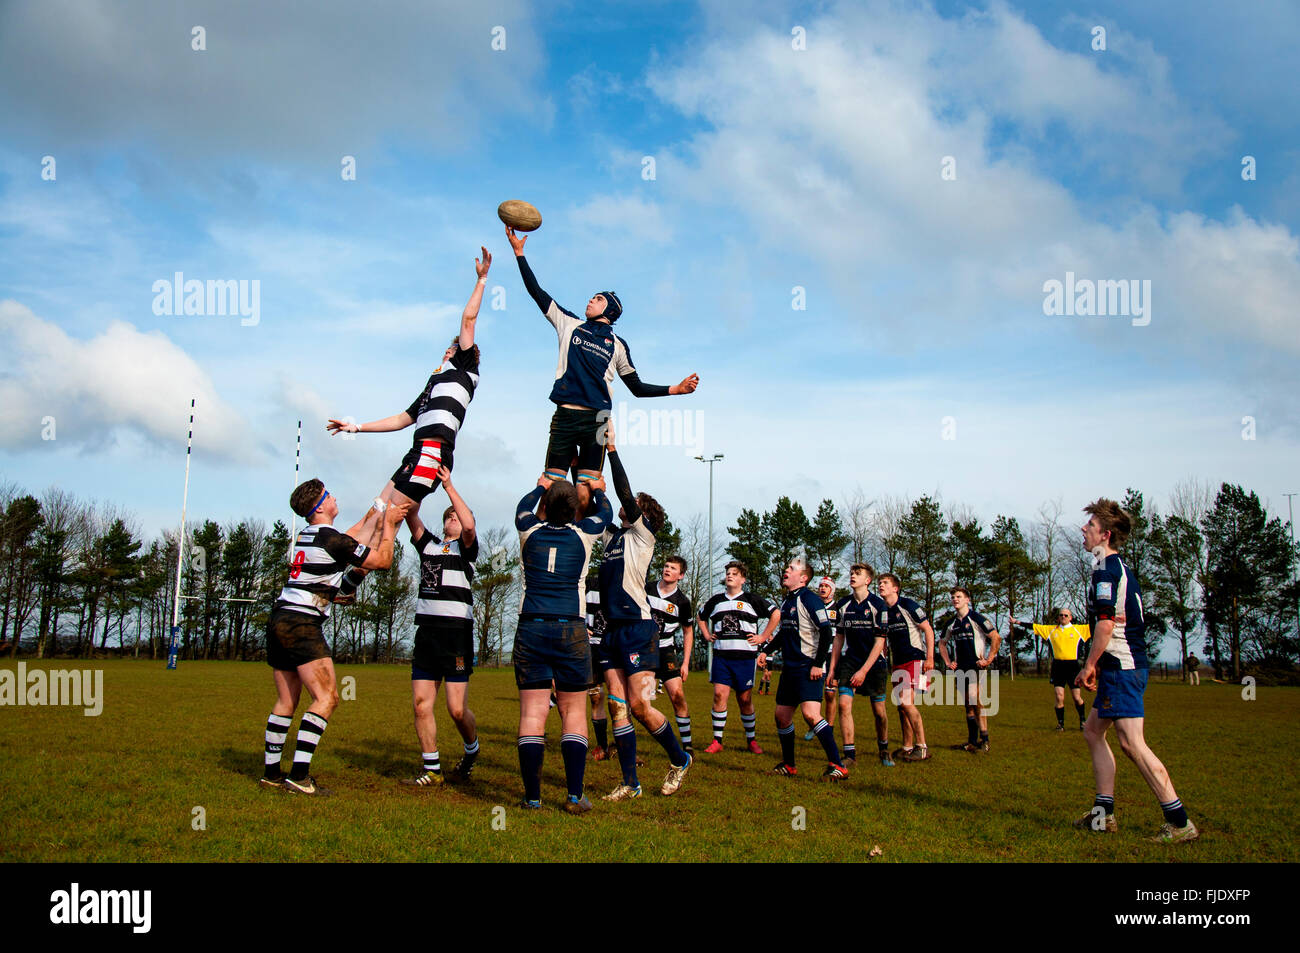 Under 16 age group rugby union match lineout between Walcot RFC and Avonvale RFC in Bath, UK - Stock Image